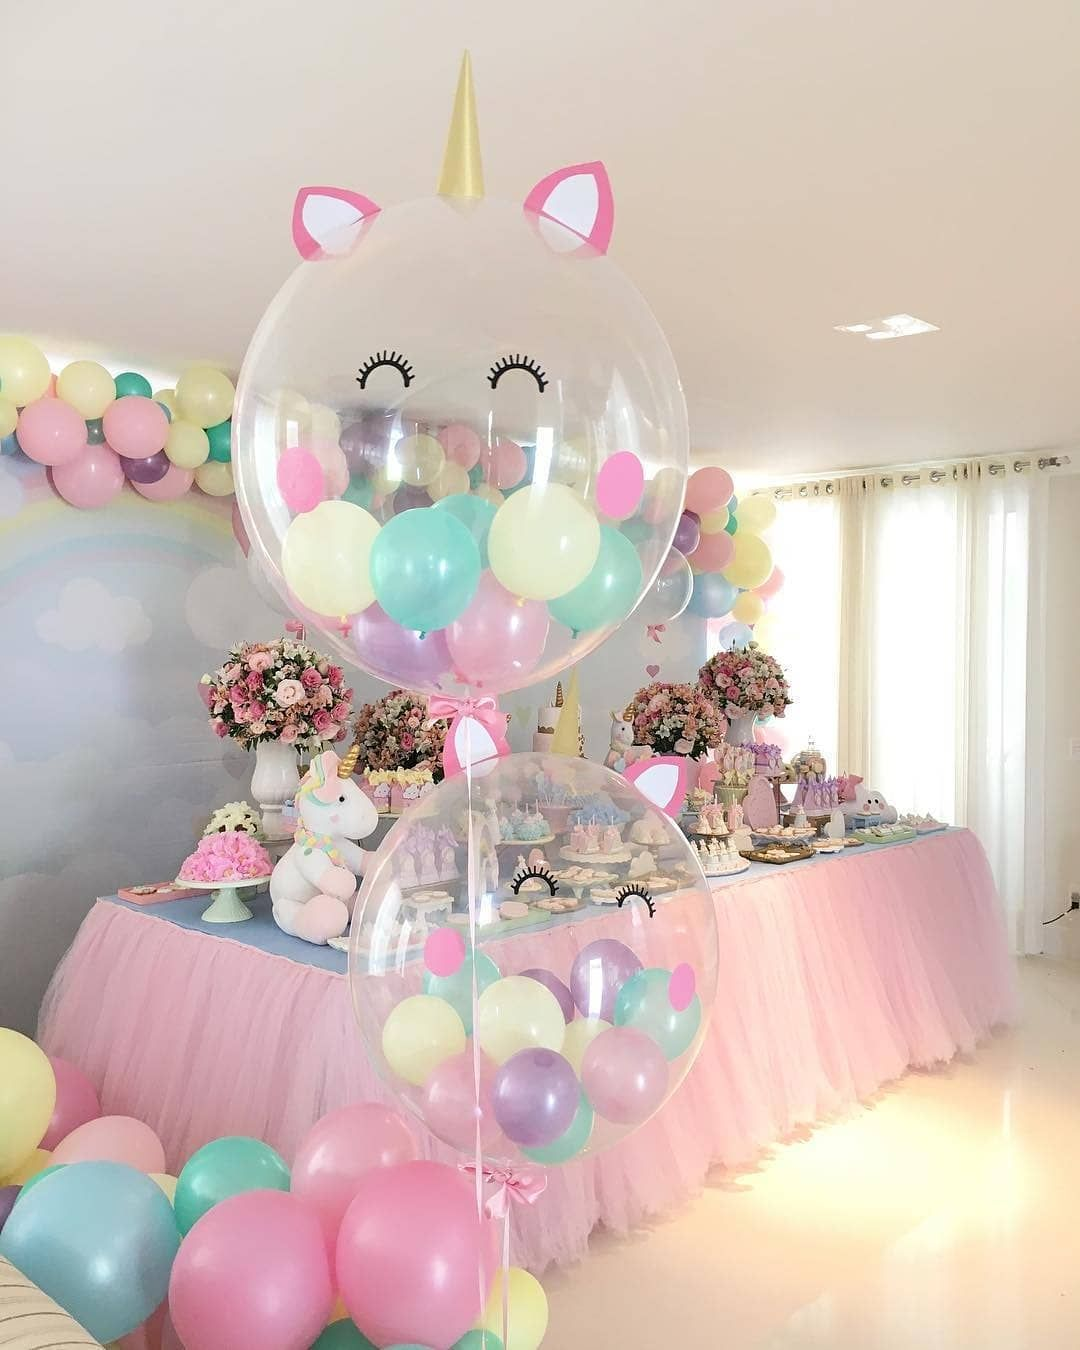 Unicorn birthday party balloons decorations party diy for Birthday balloon ideas